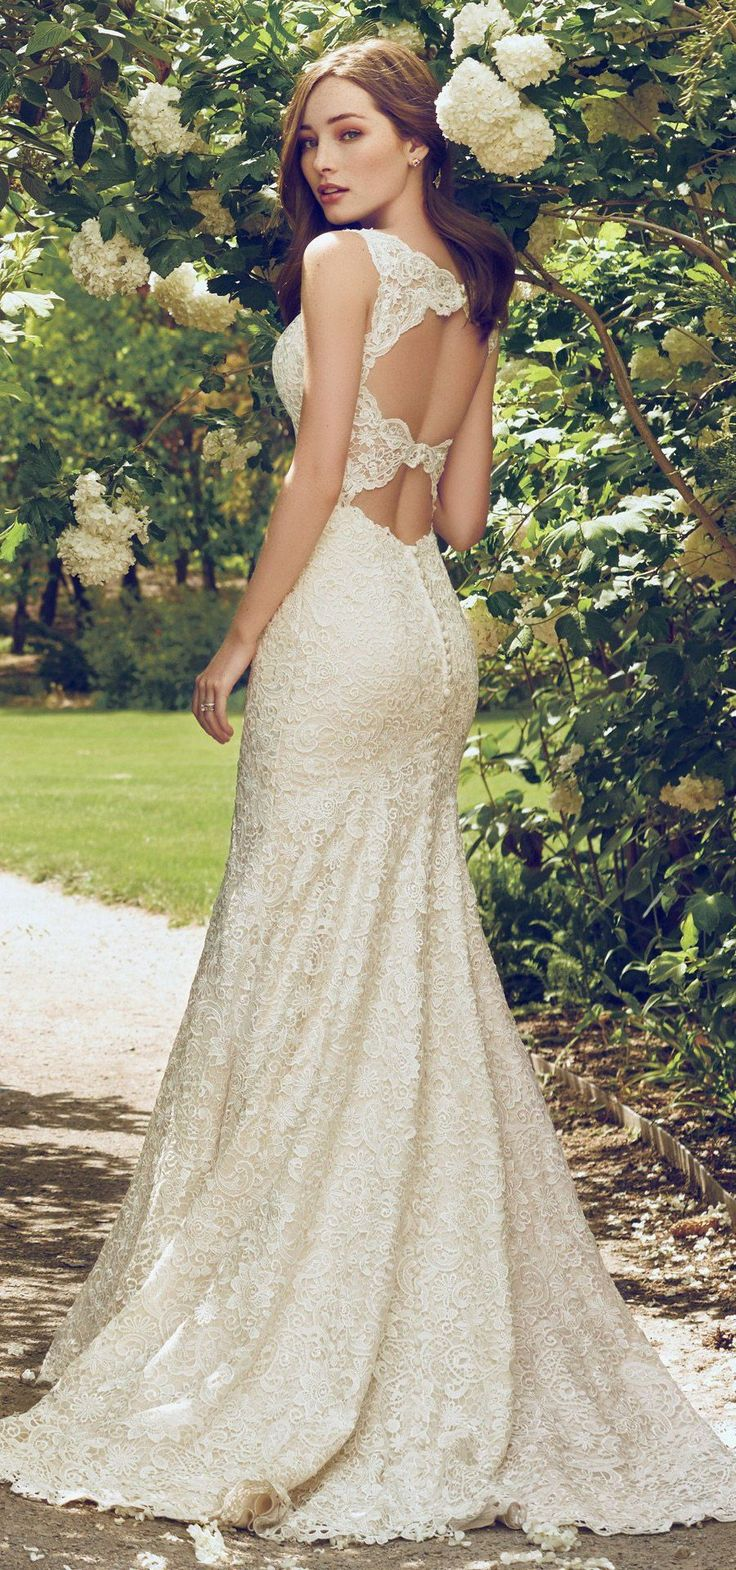 rebecca ingram wedding (hope) sleeveless lace straps vneck beaded lace trumpet sheath gown double keyhole back bv